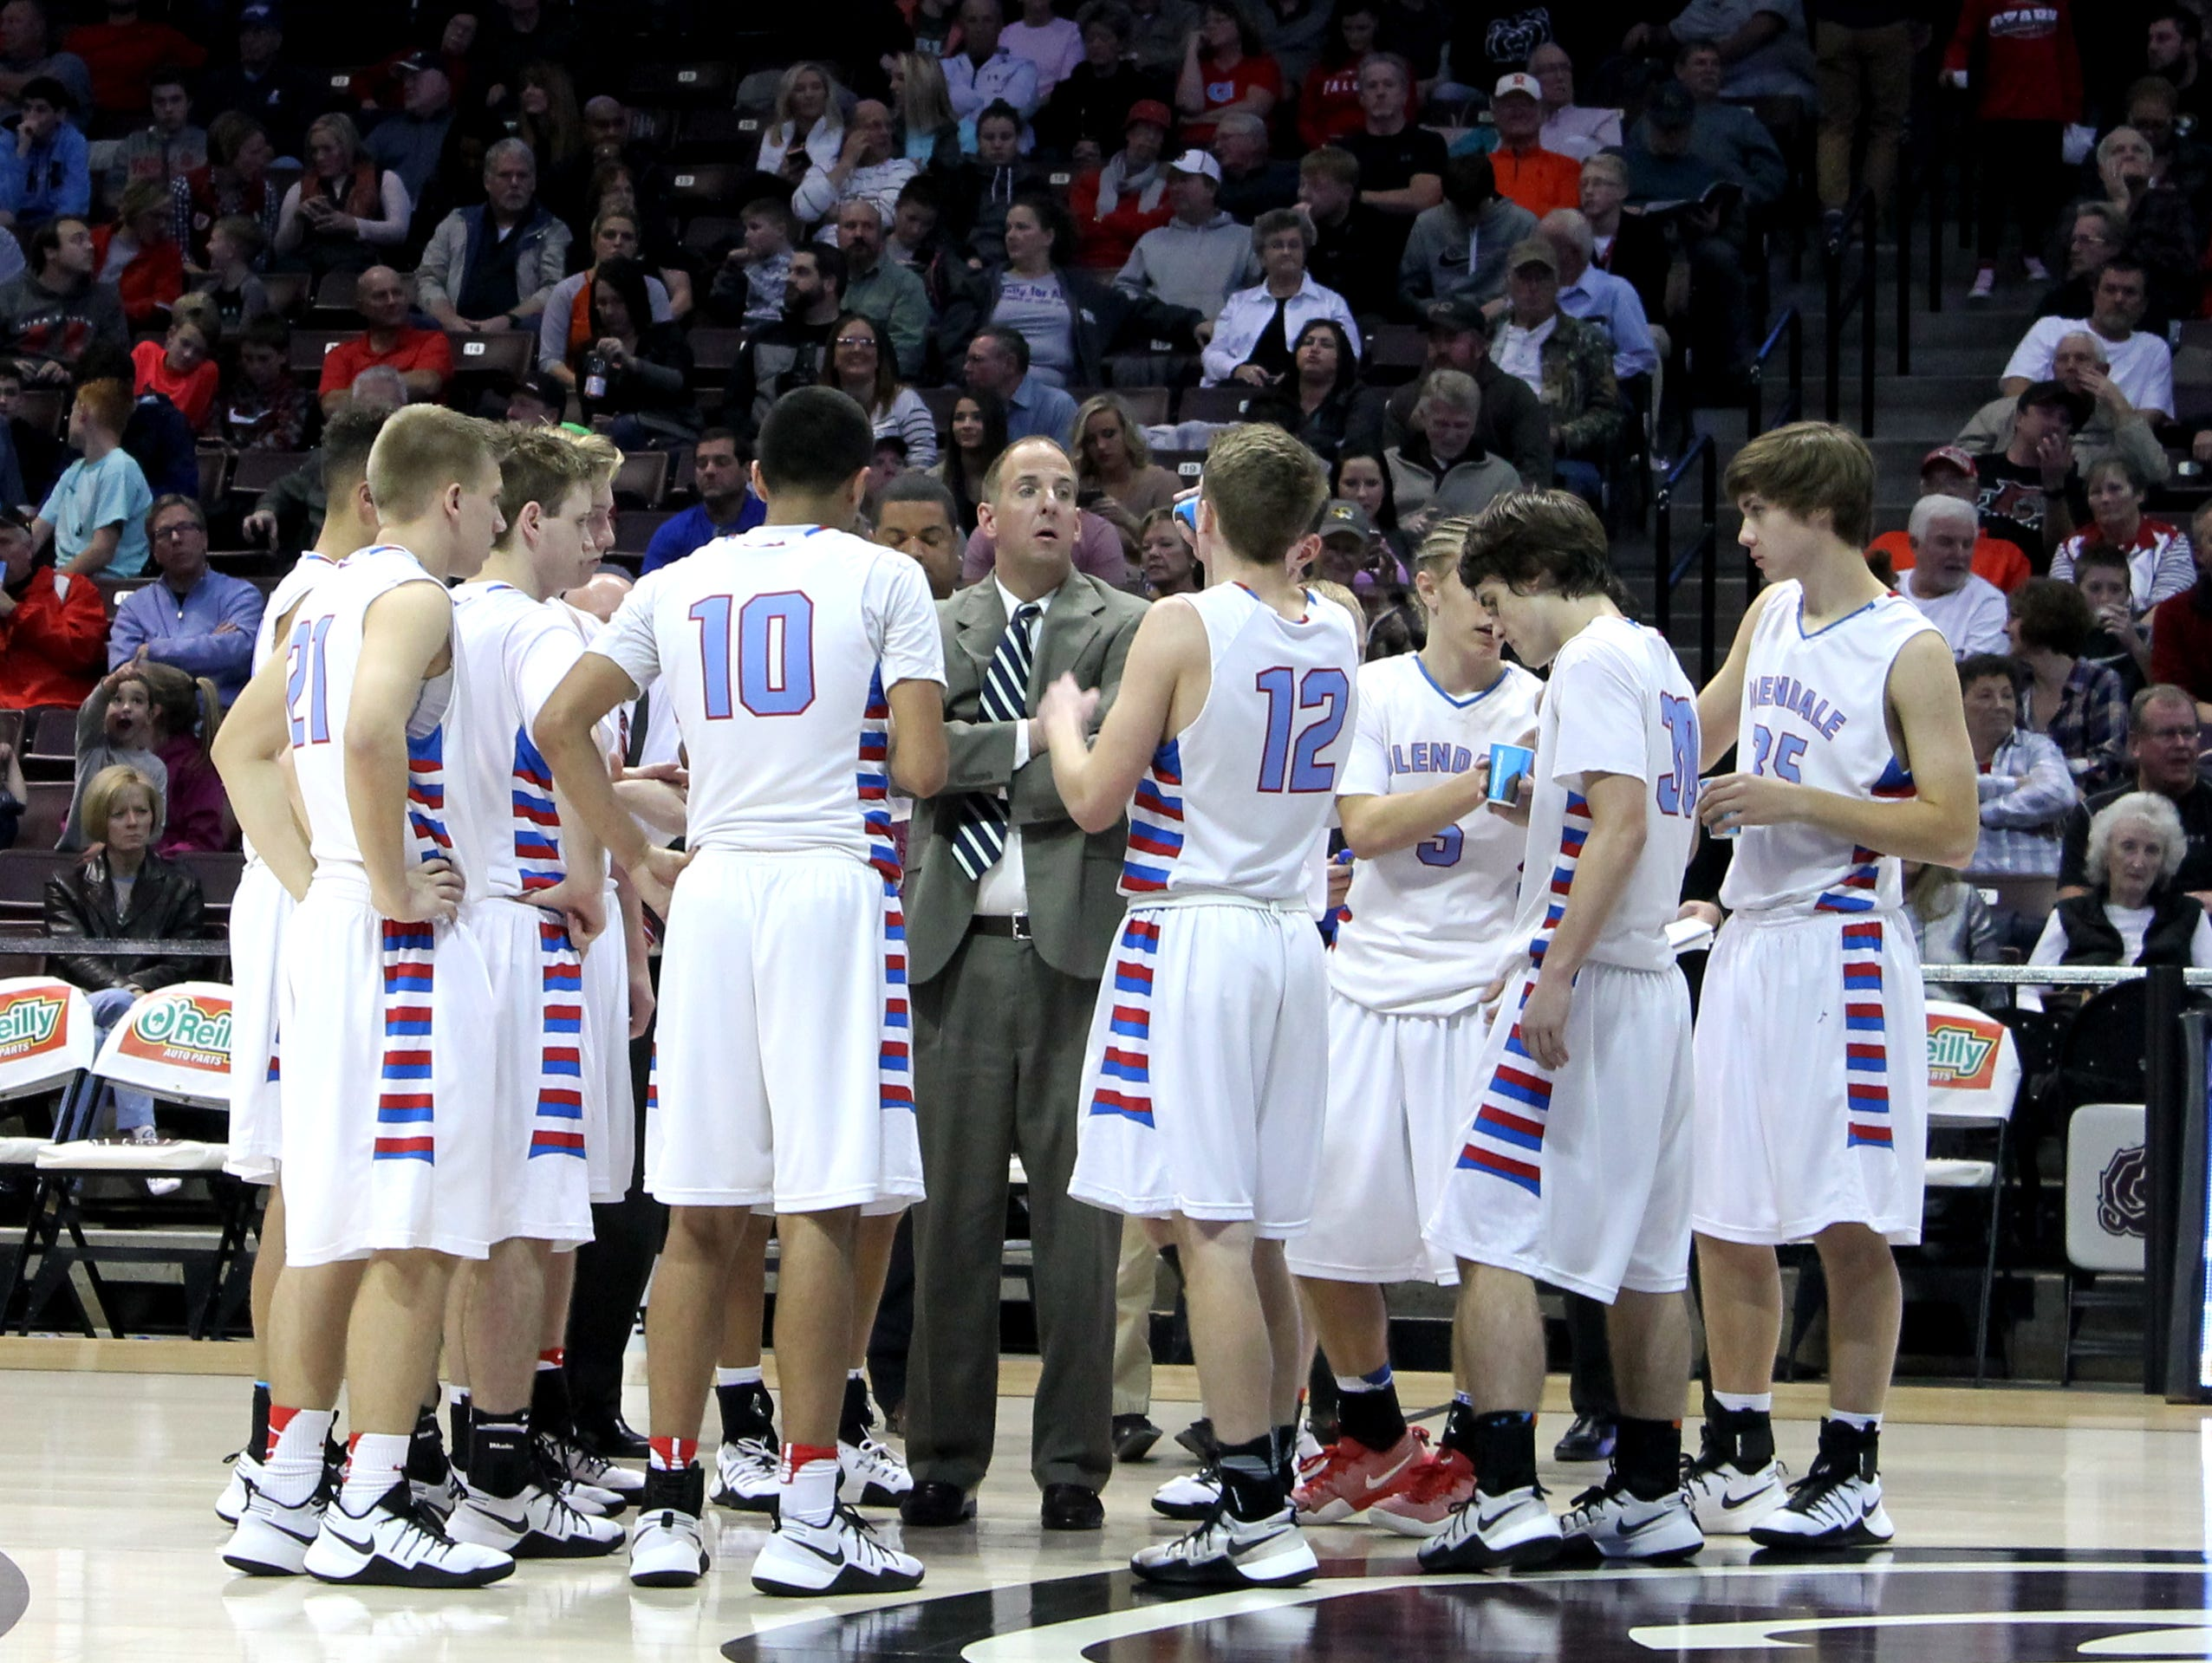 The Glendale High School boys basketball team gathers around coach Brian McTague during a timeout of a Blue Division semifinal game with Hartville on Dec. 28, 2016 at JQH Arena.